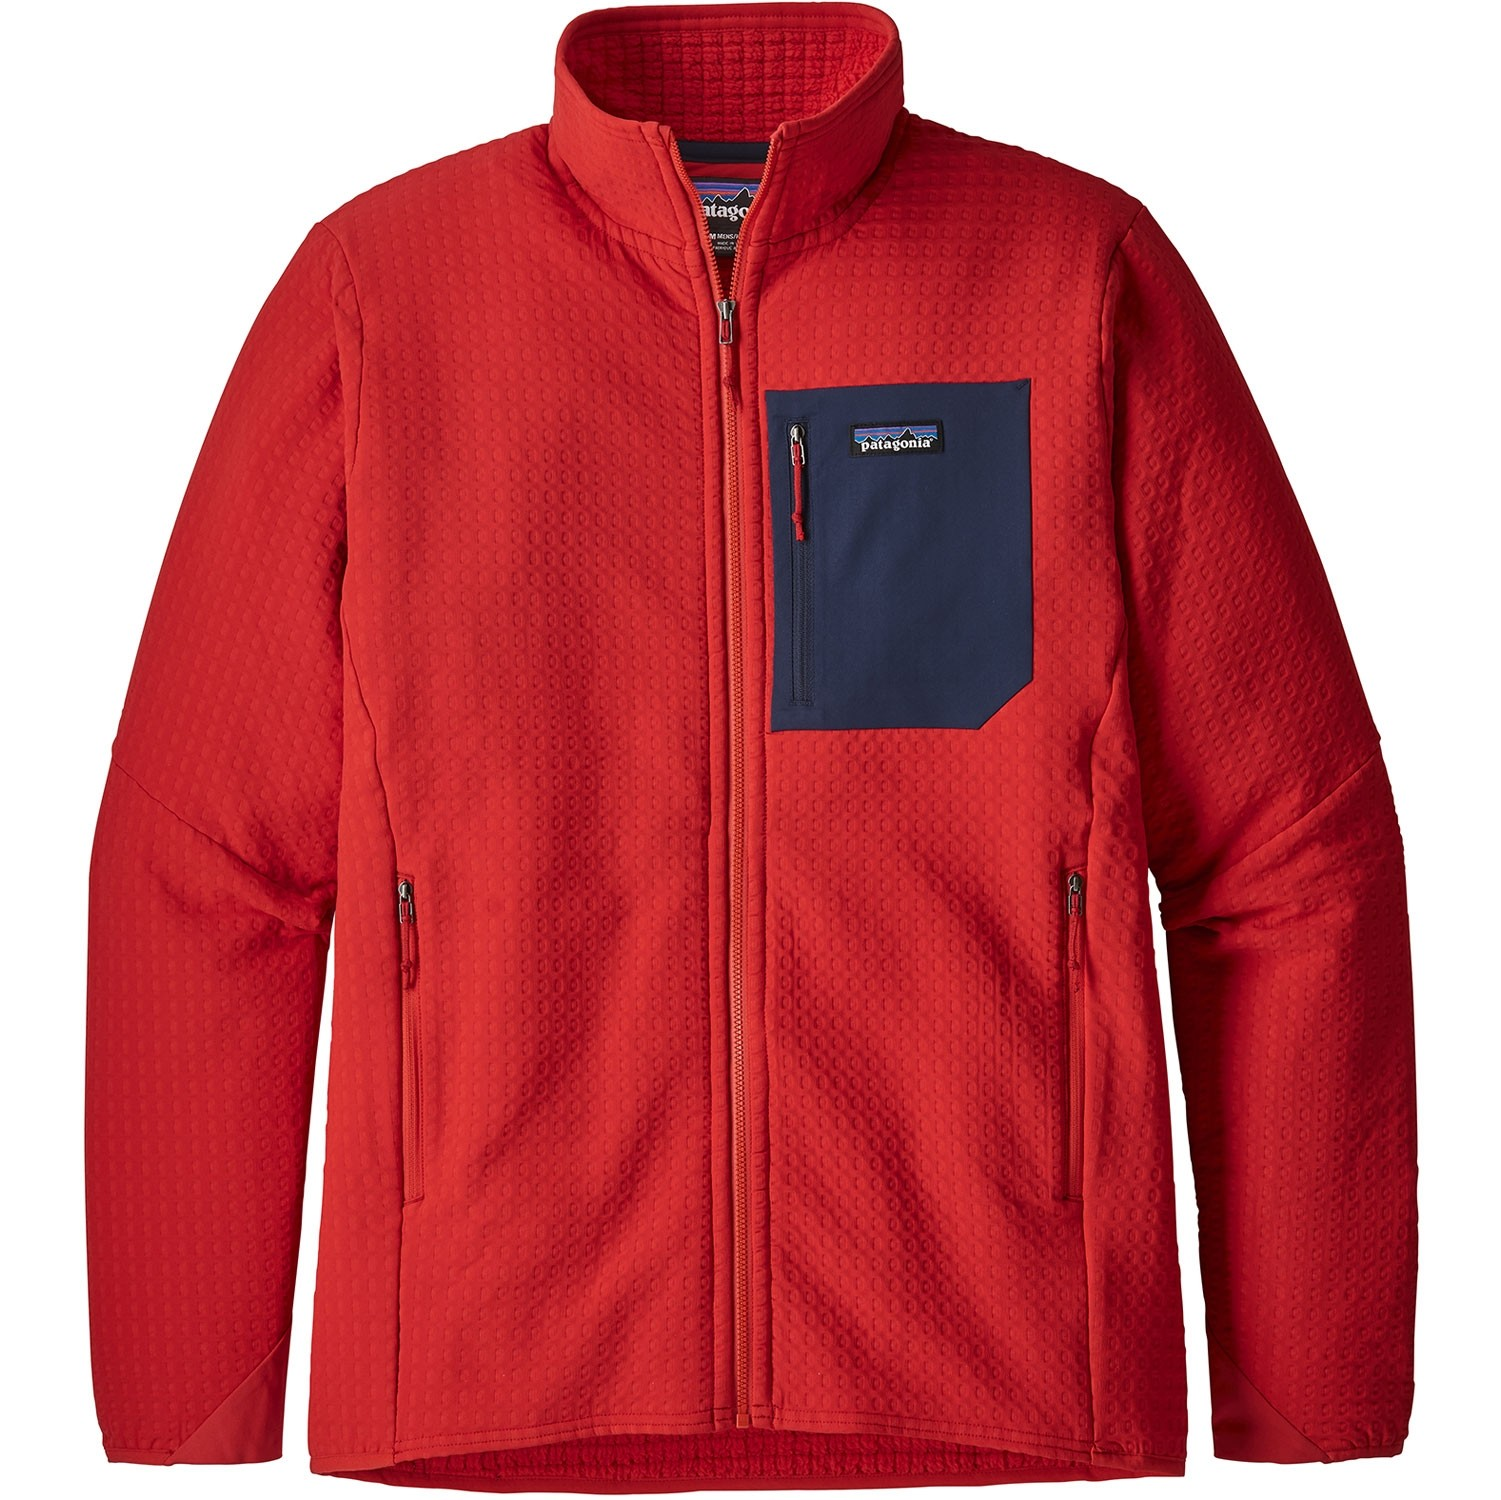 Patagonia R2 TechFace Jacket - Fire